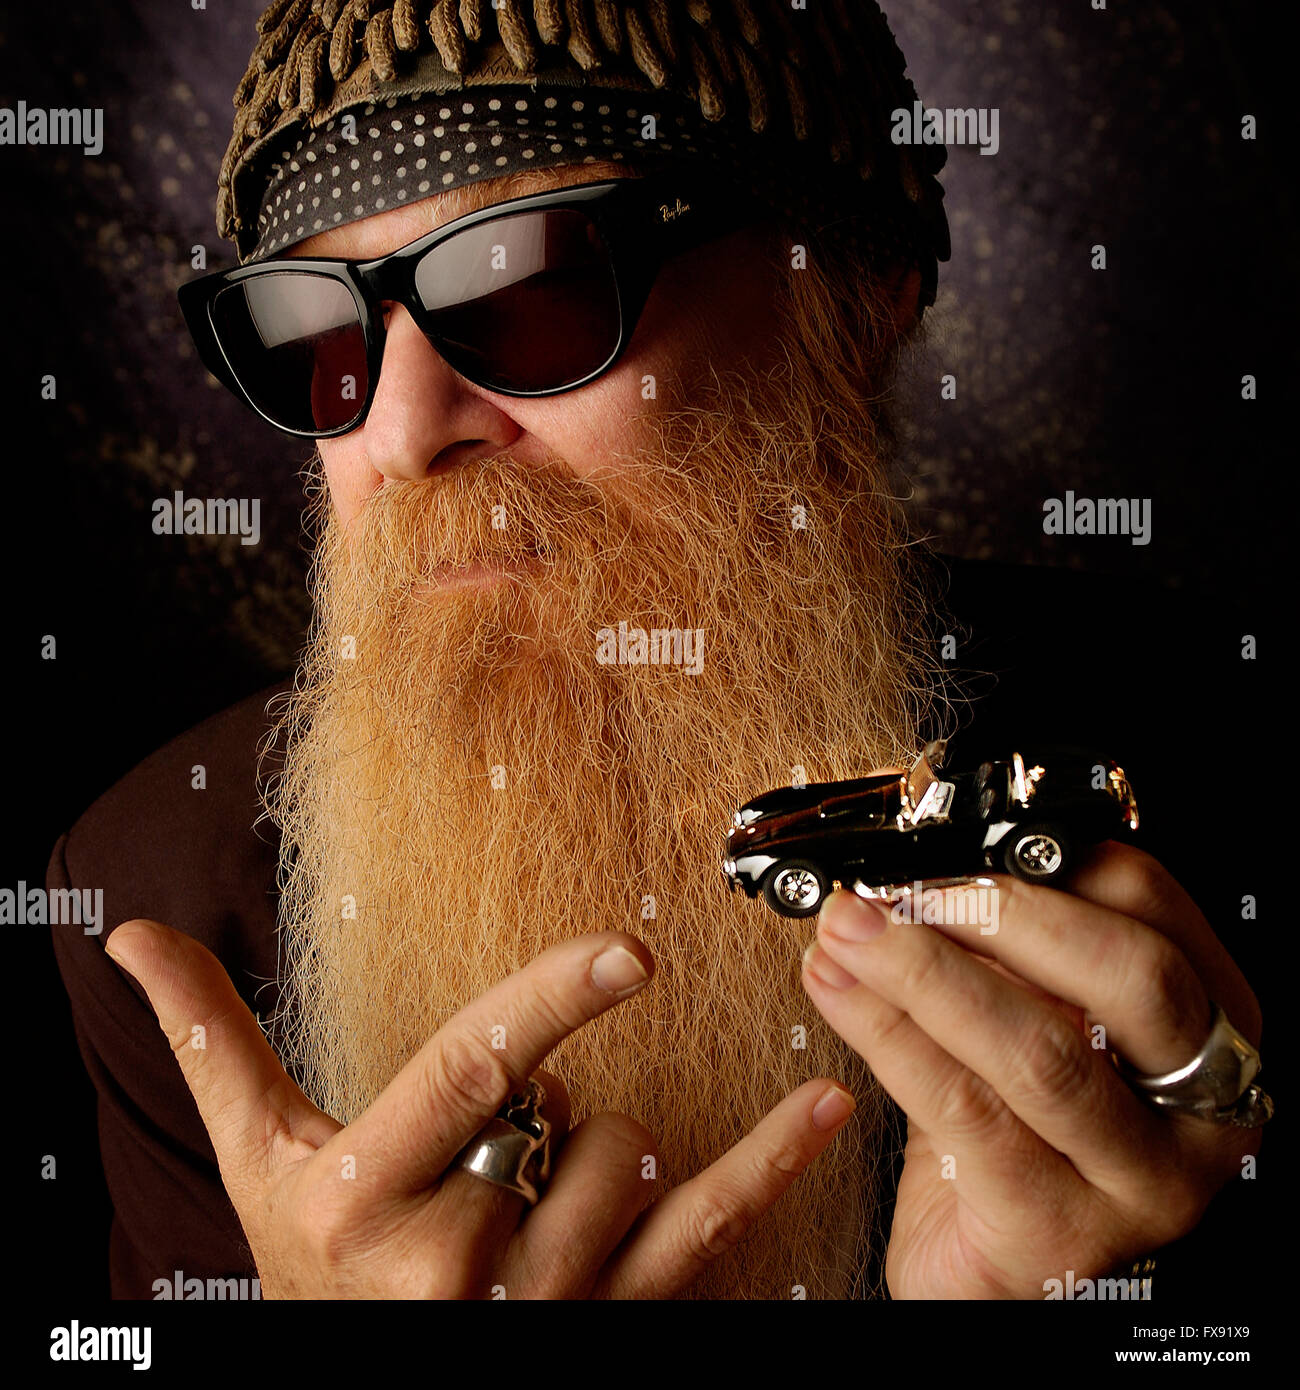 Billy Gibbons from ZZ Top - Stock Image